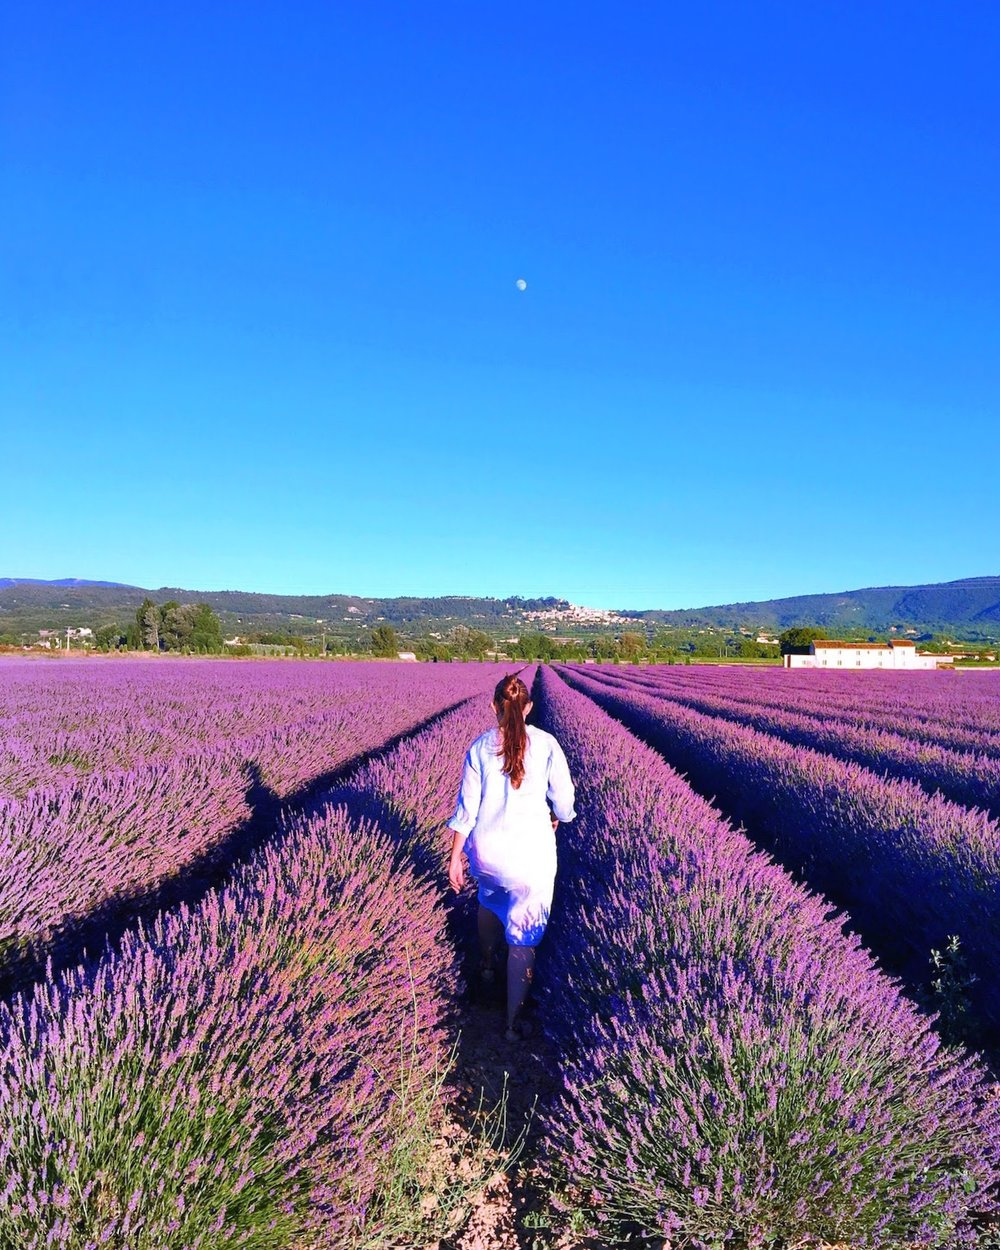 The Provence Experience - June 26 - July 1, 2018